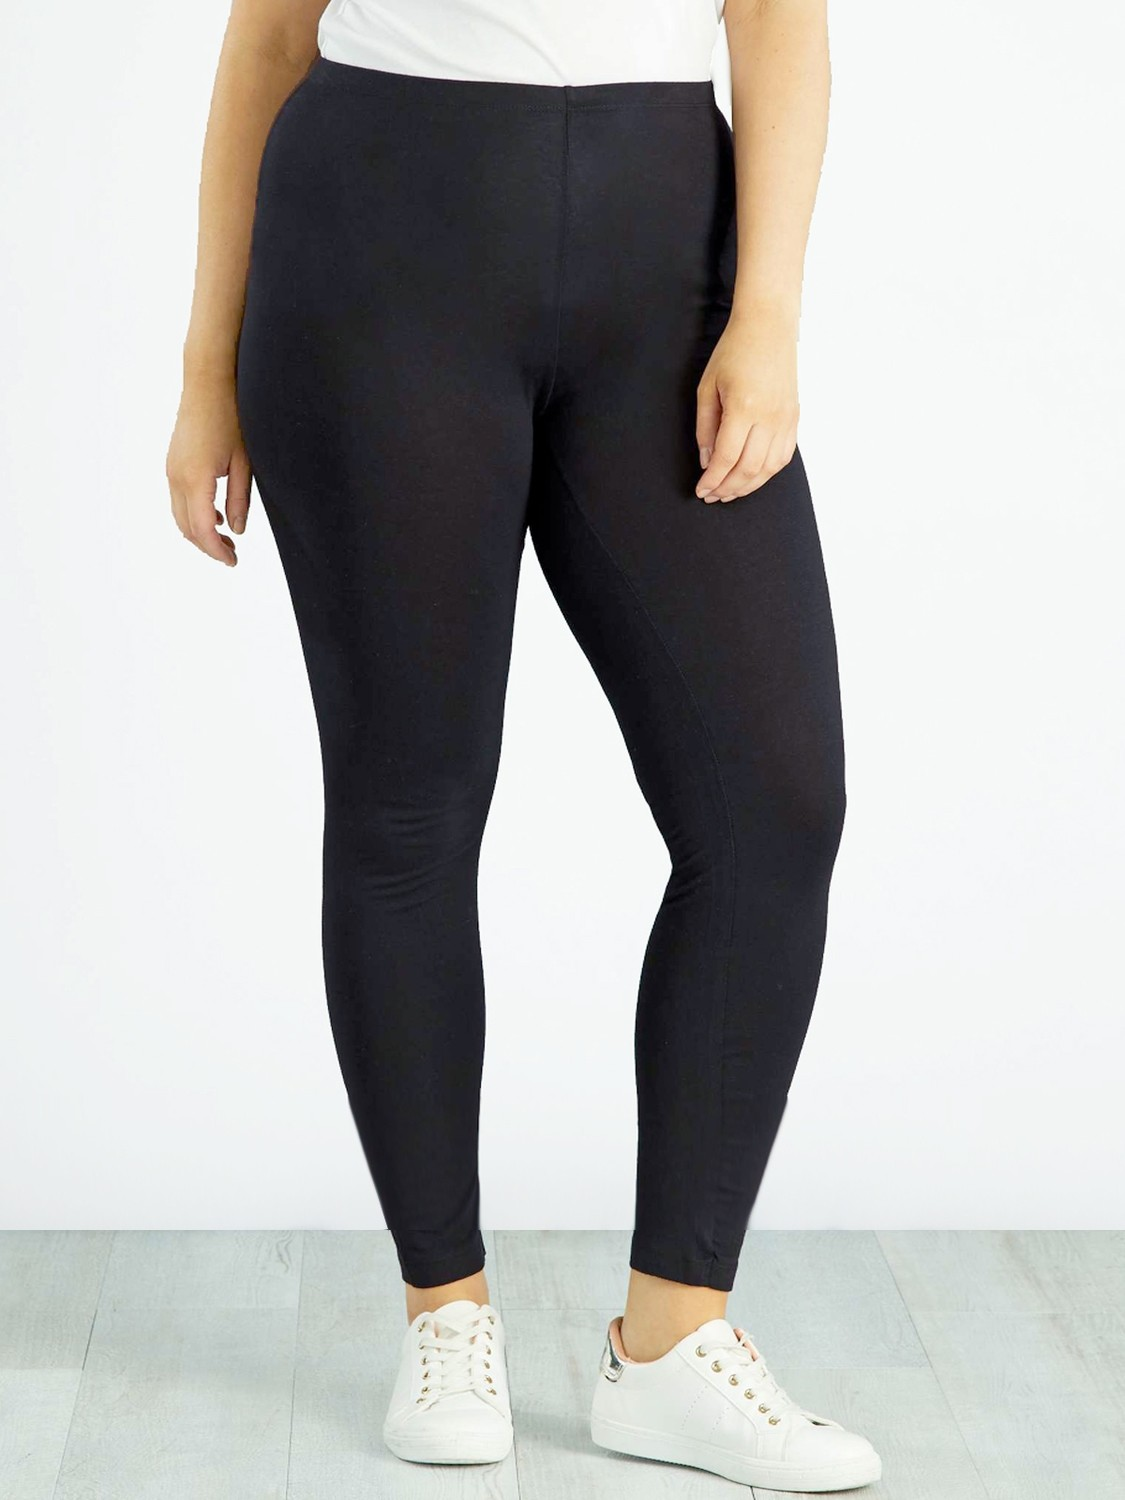 Cotton Rich Full Length Leggings